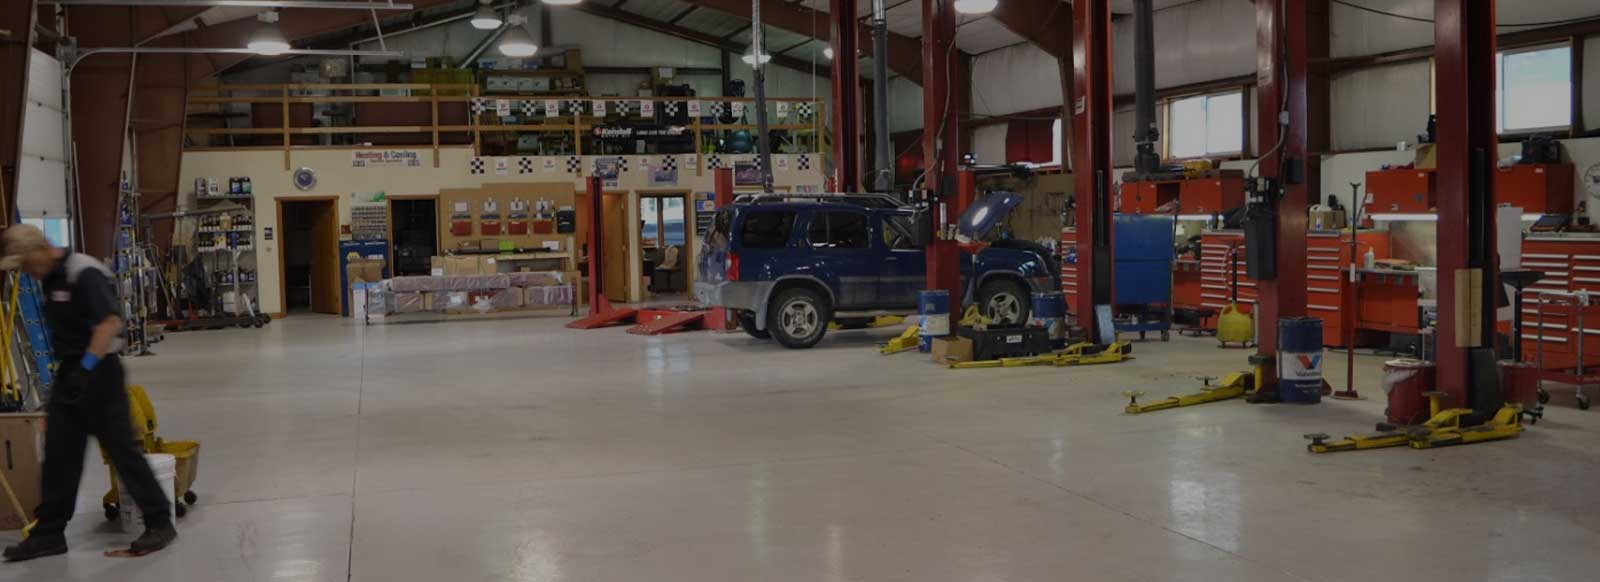 Doc's Auto Clinic Auto Repair Shop in Steamboat Springs, CO